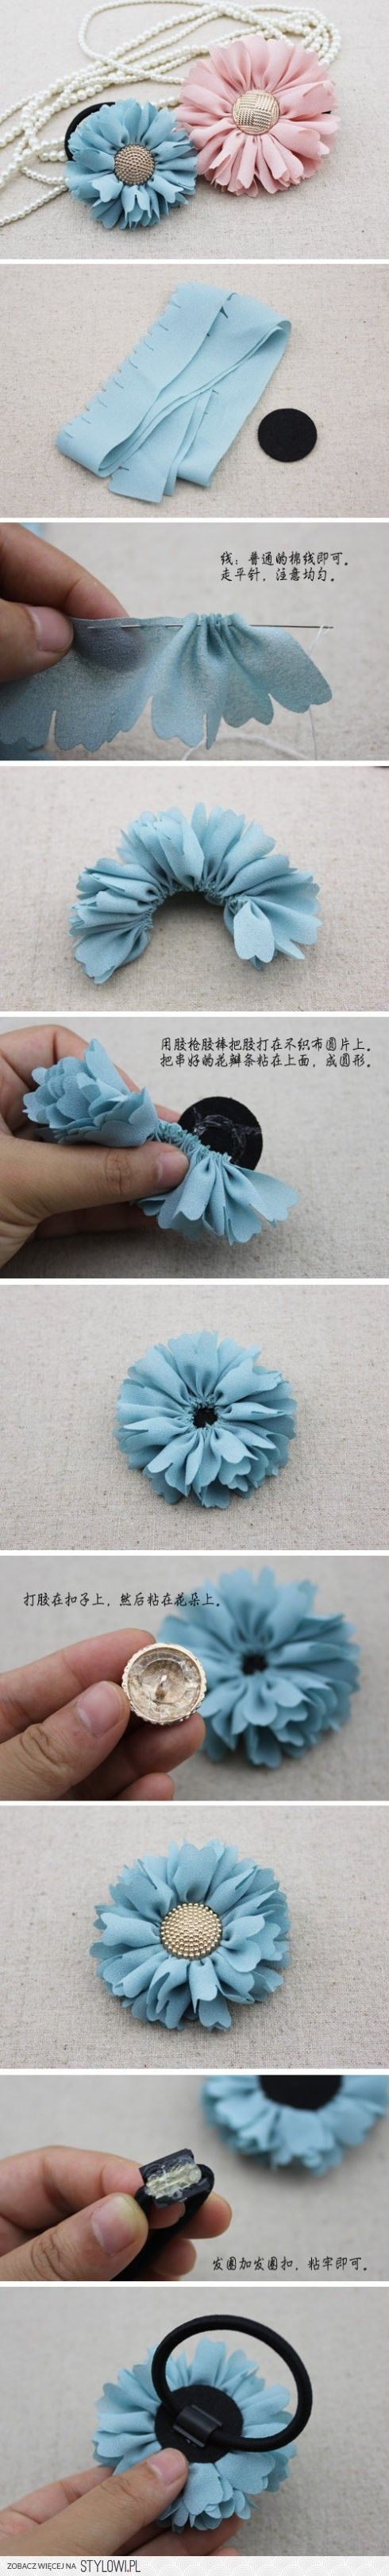 love the use of buttons in this quick flowery DIY